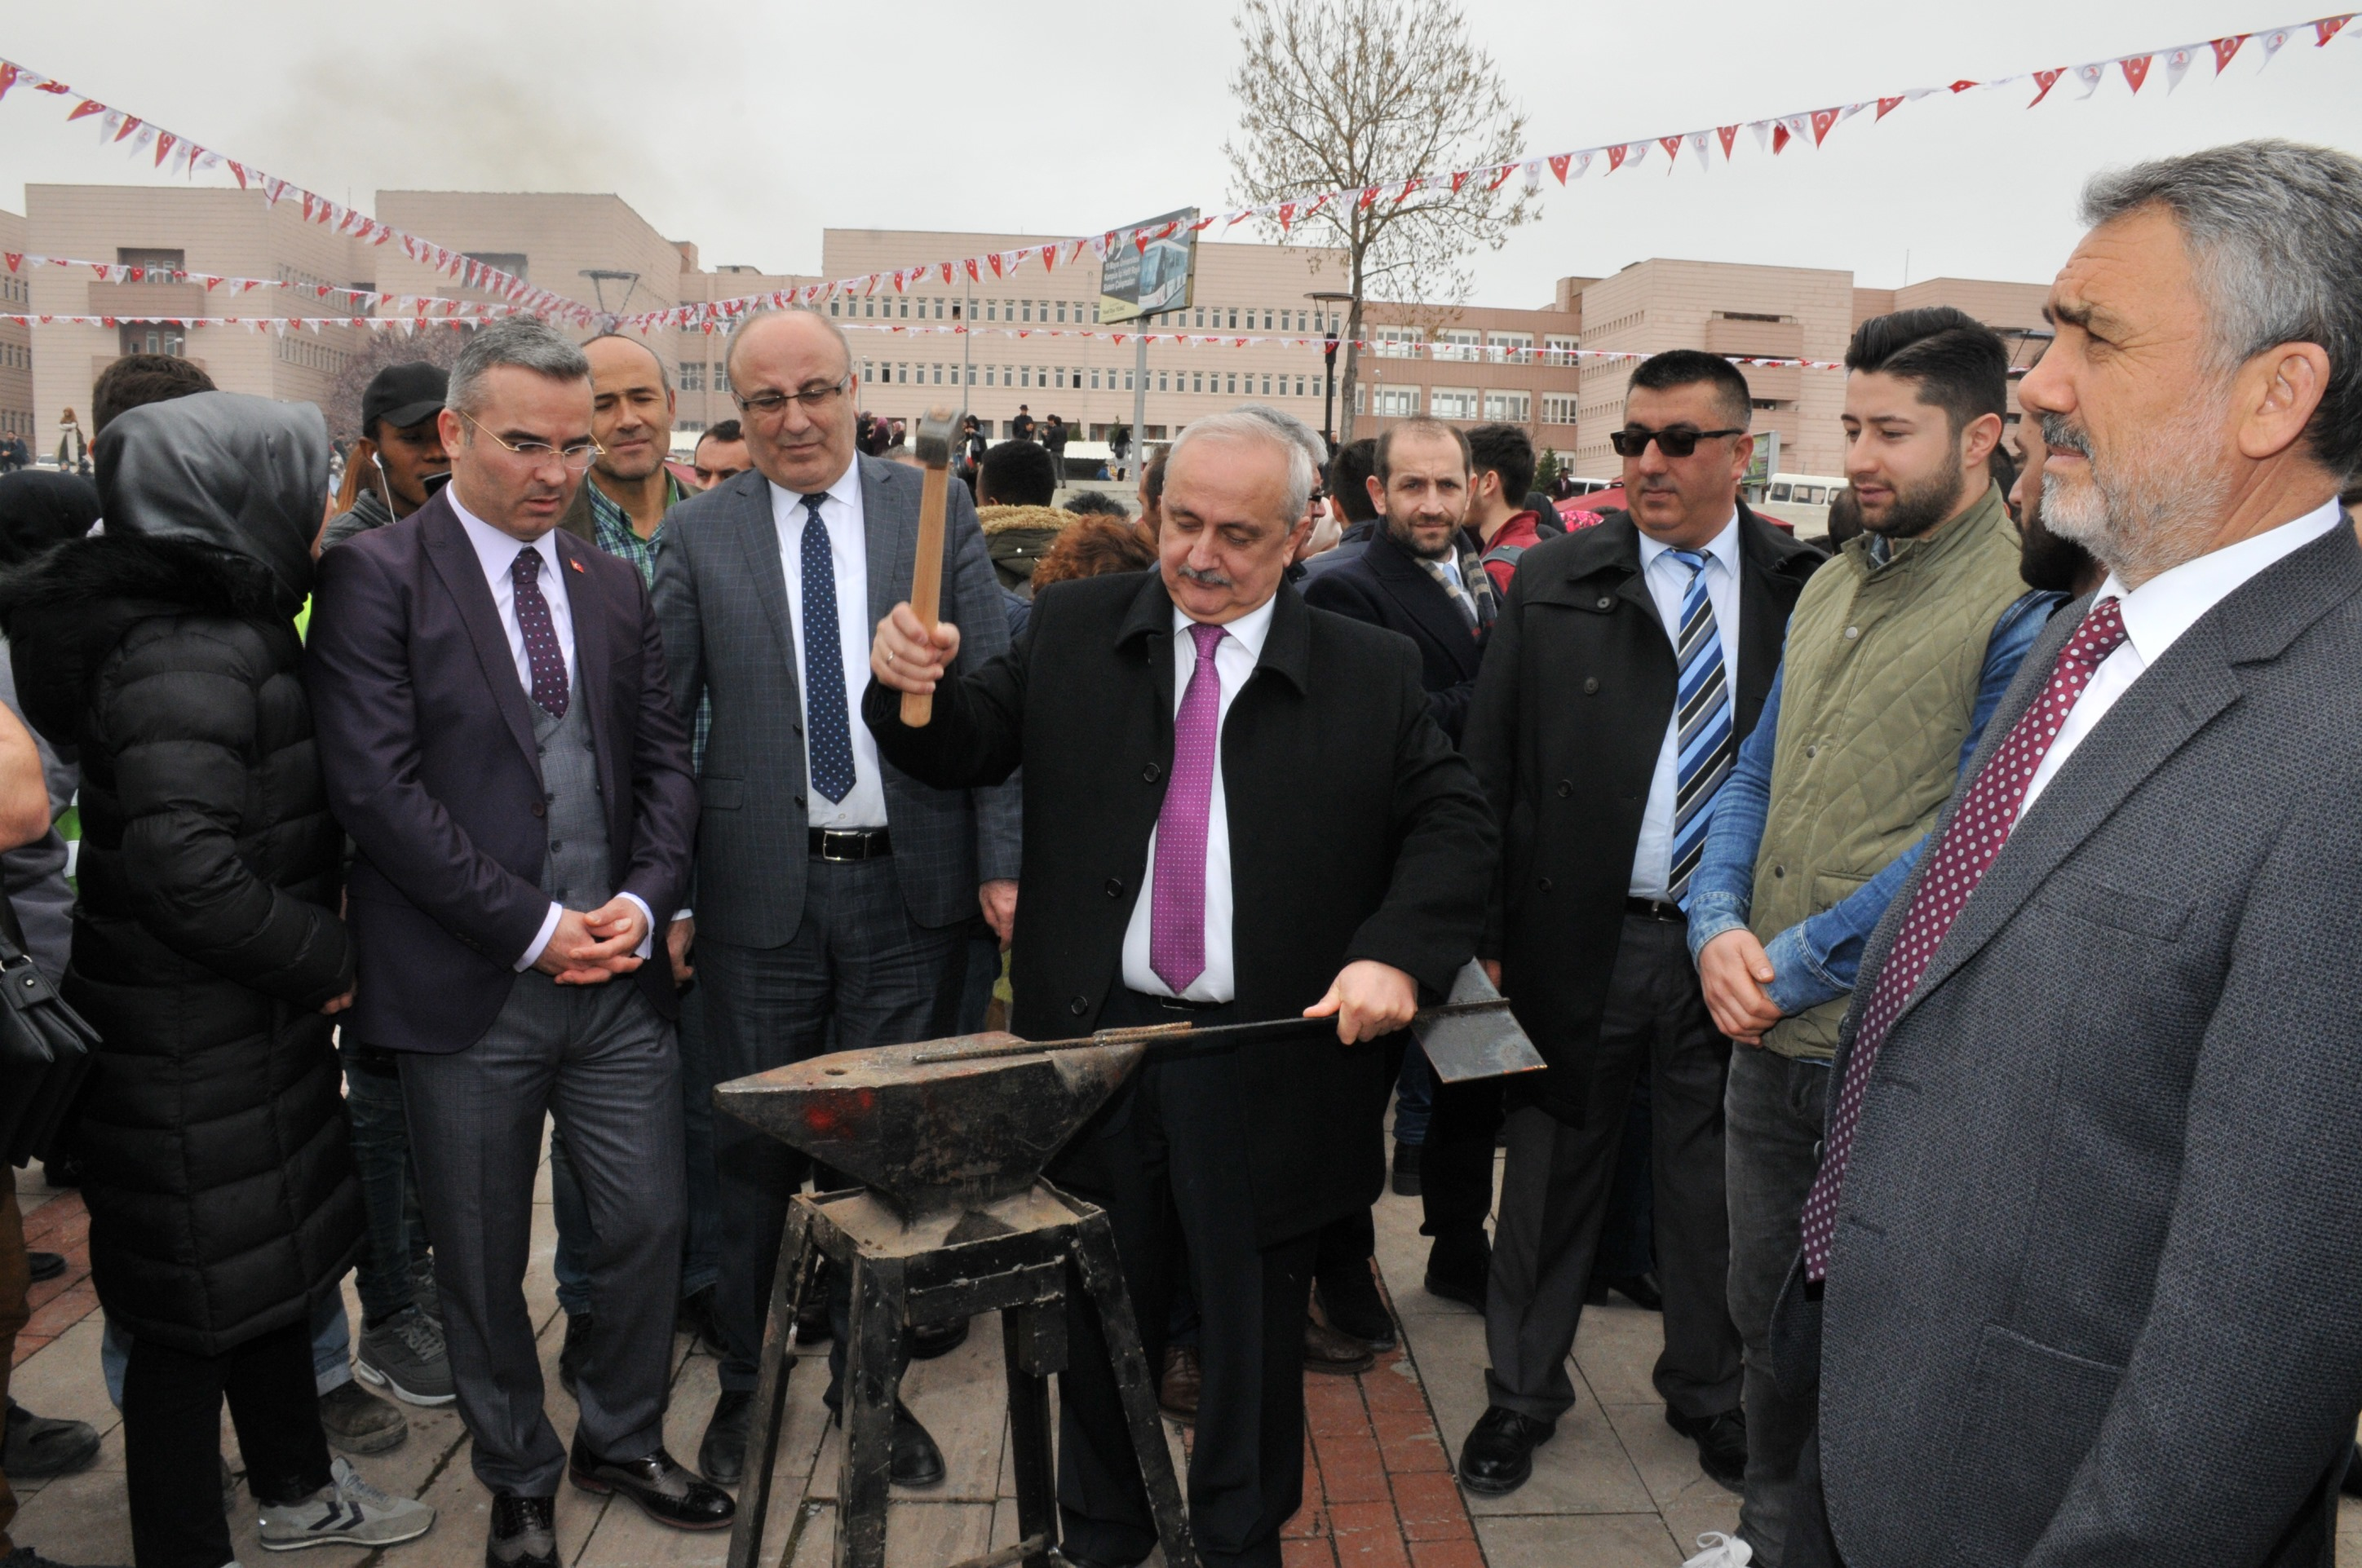 http://www.omu.edu.tr/sites/default/files/files/omu_family_enthusiastically_celebrated_newroz/dsc_0306.jpg